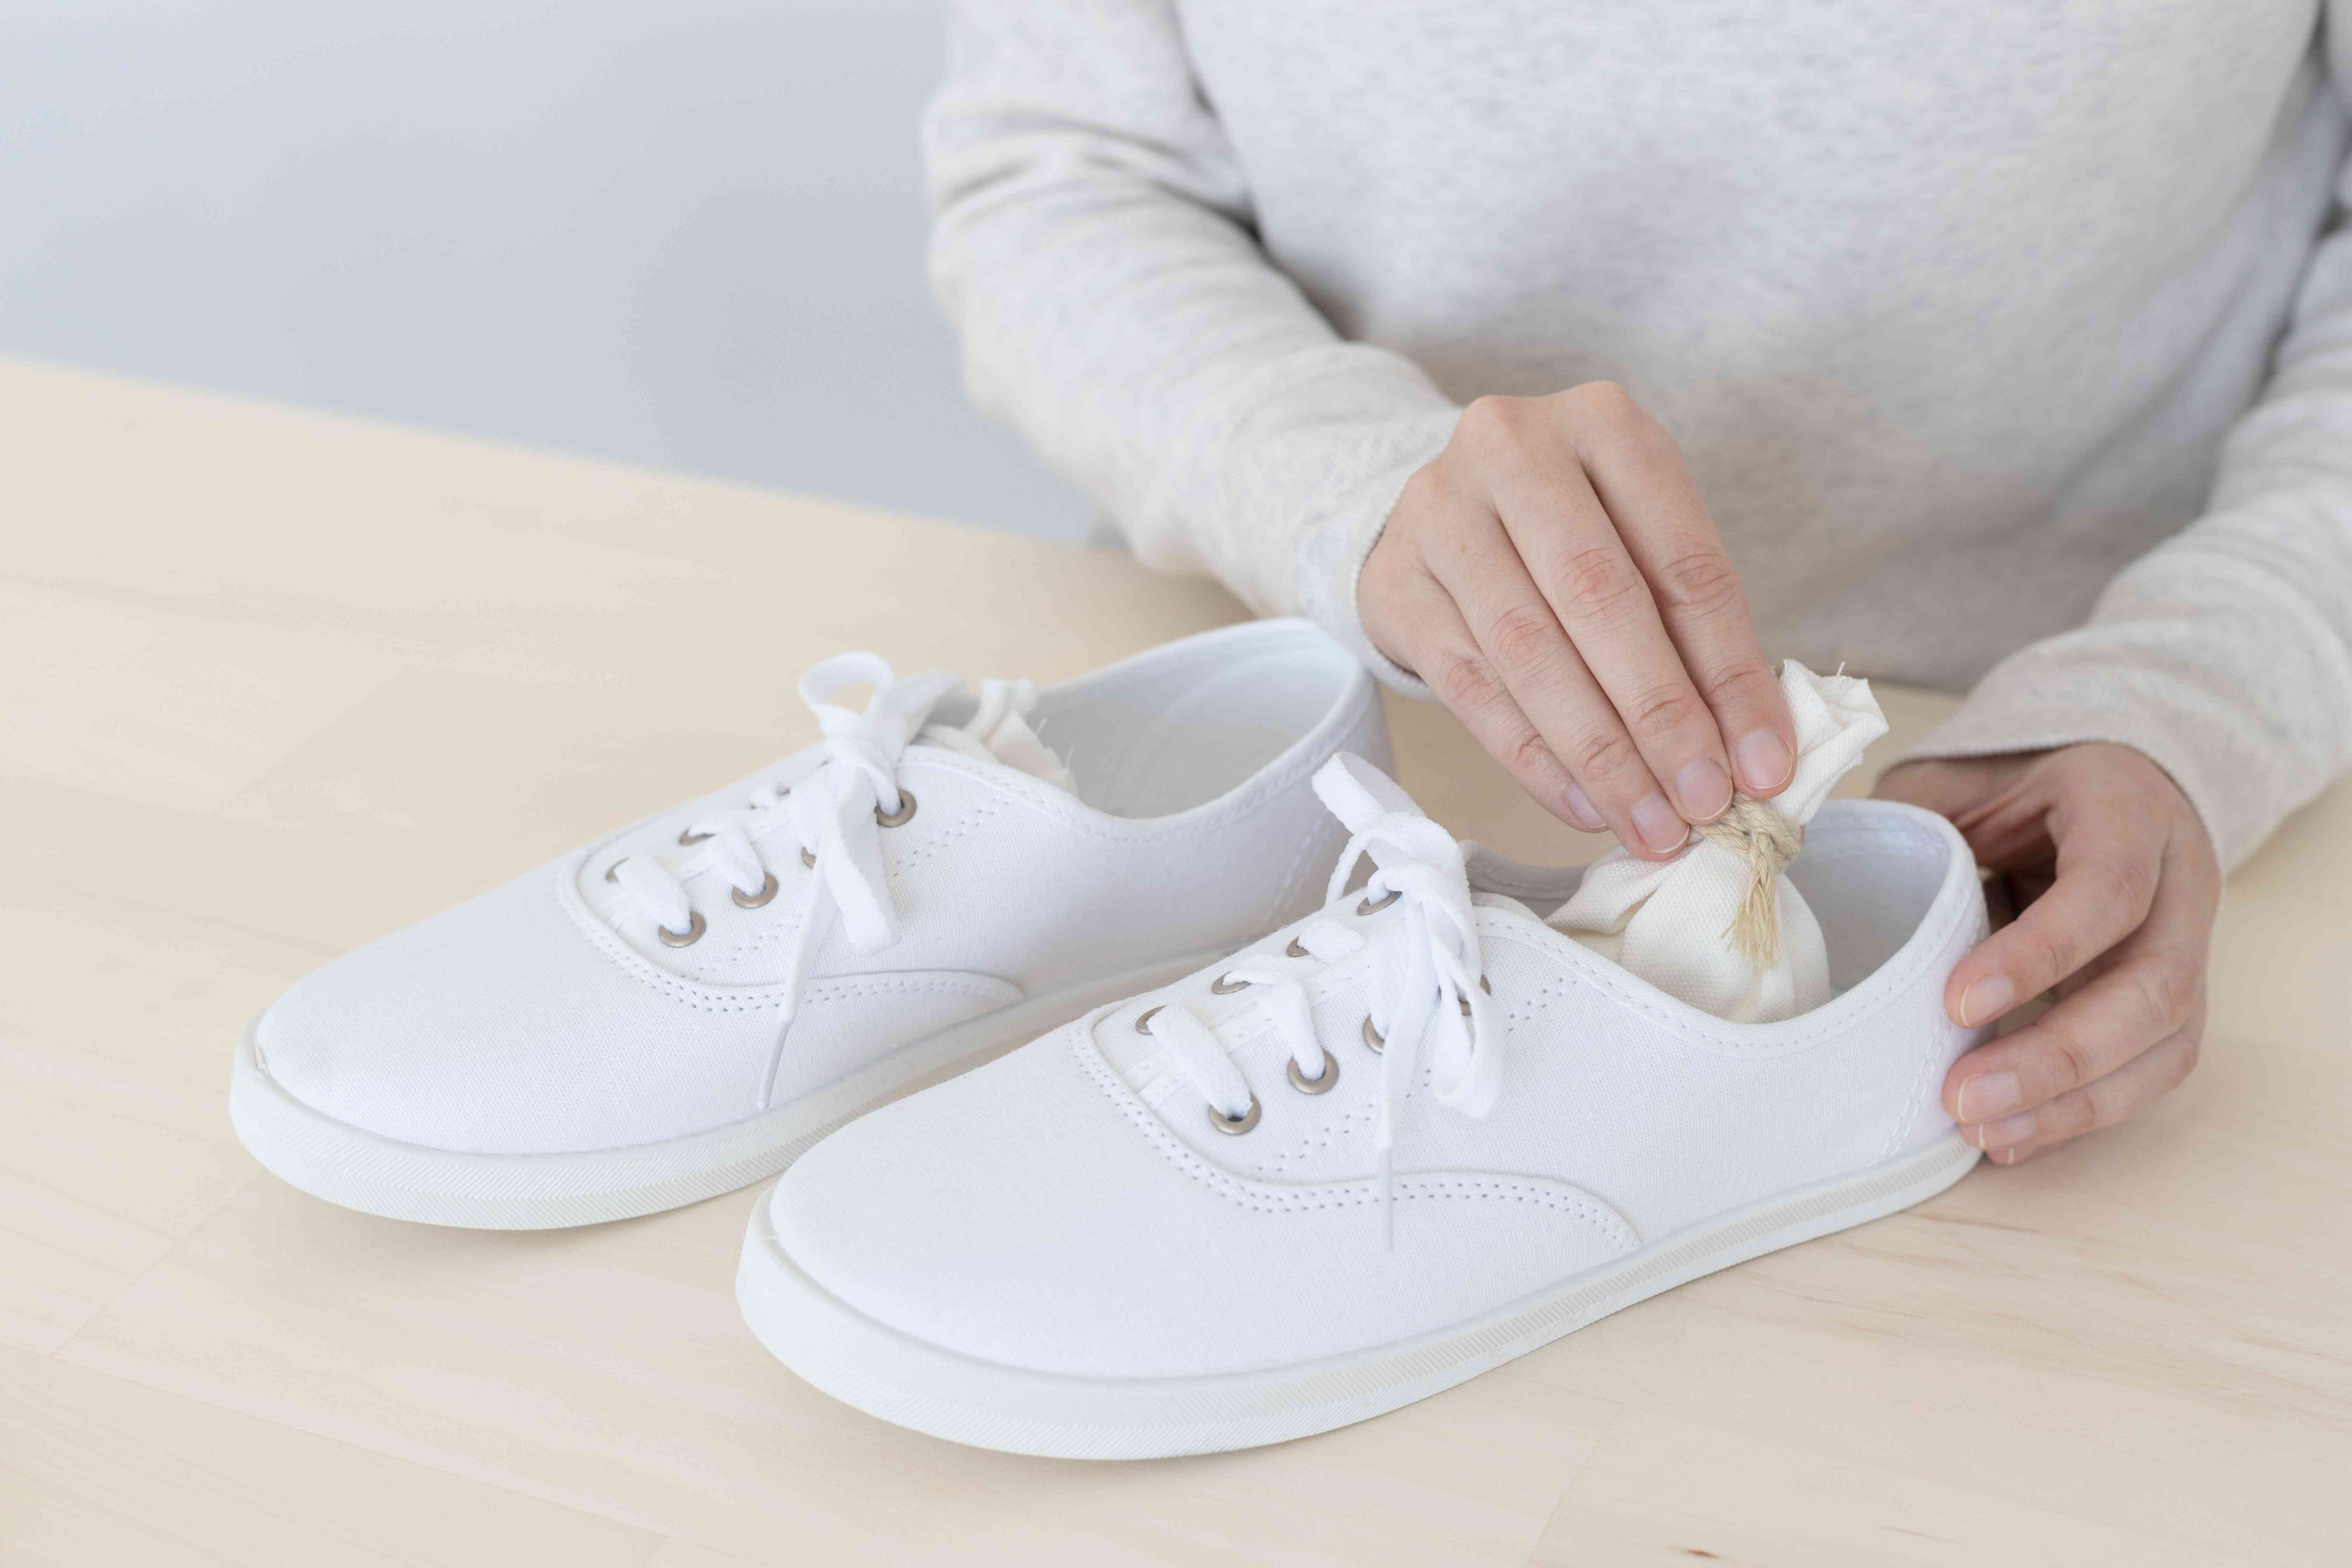 Bag of baking soda placed inside canvas shoes